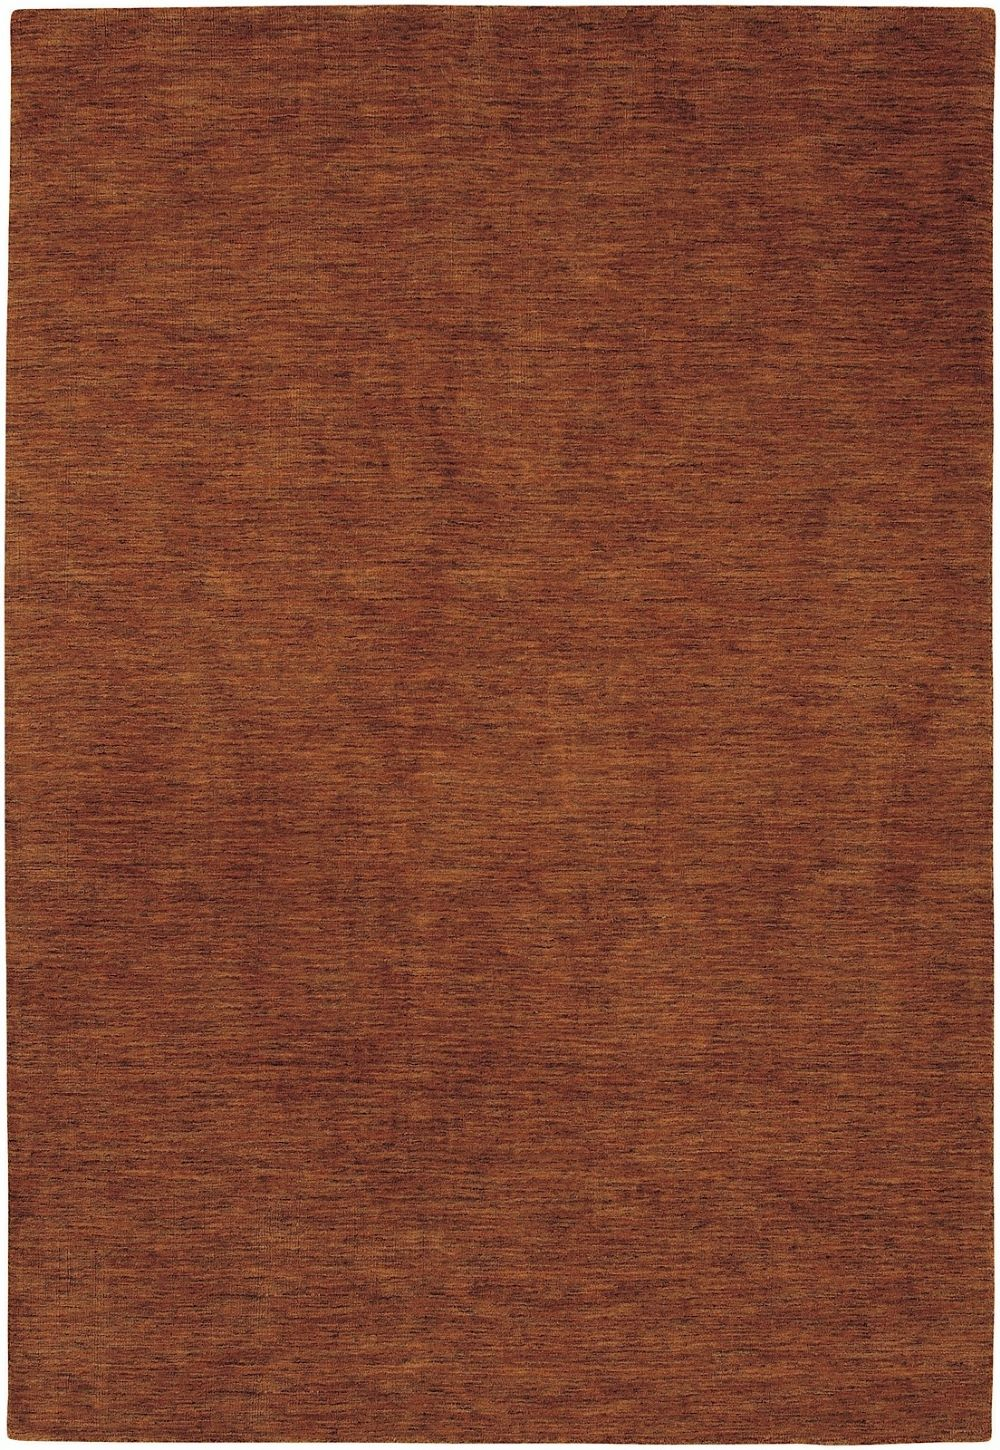 couristan mystique solid/striped area rug collection